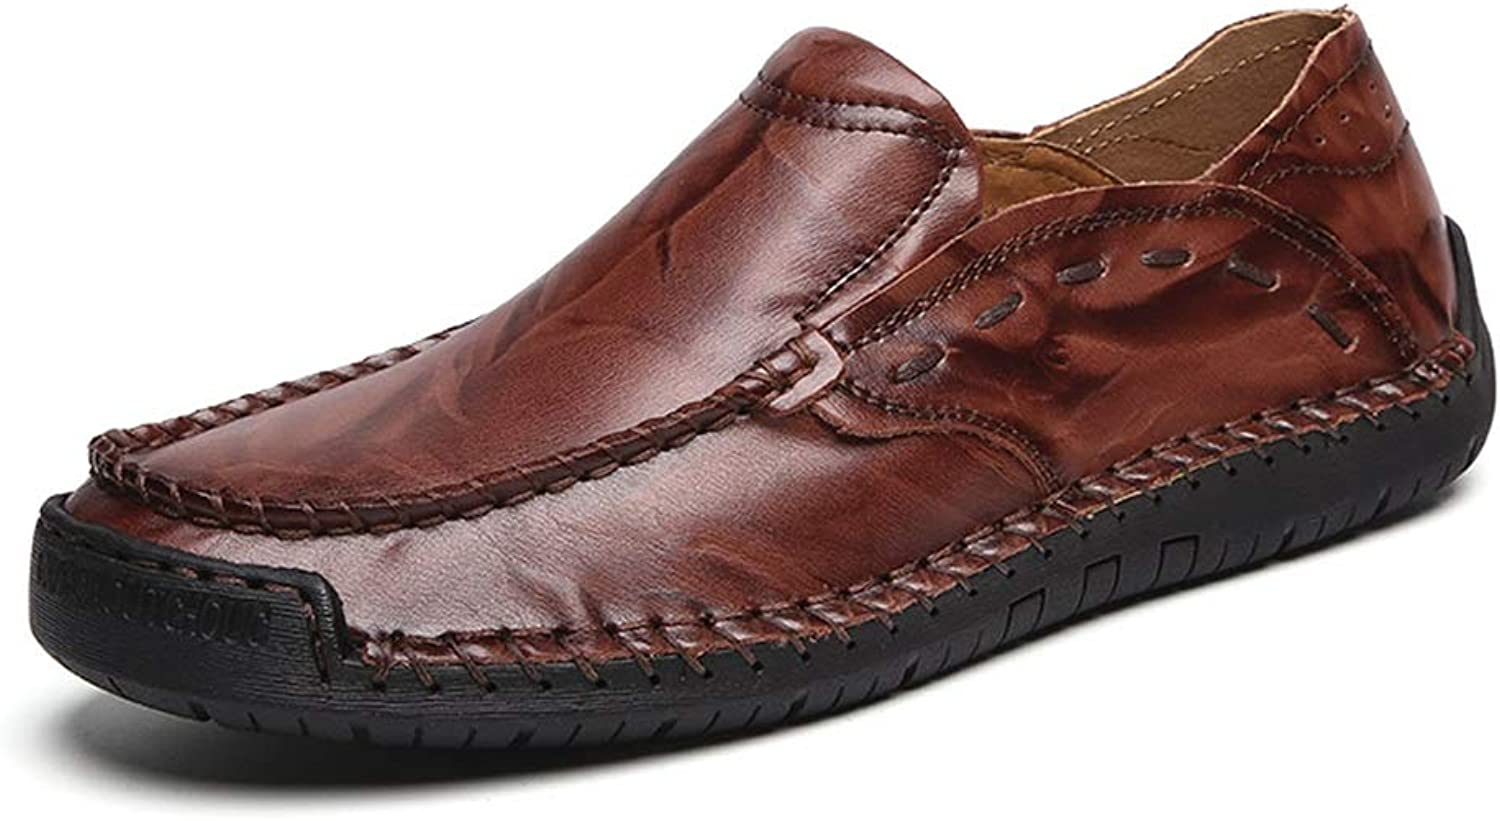 Easy Go Shopping Business Casual PU Leather shoes For Men Comfortable Breathable Anti-slip Flat Loafers Lined Slip-on Cricket shoes (color   Reddish brown, Size   10.5 UK)